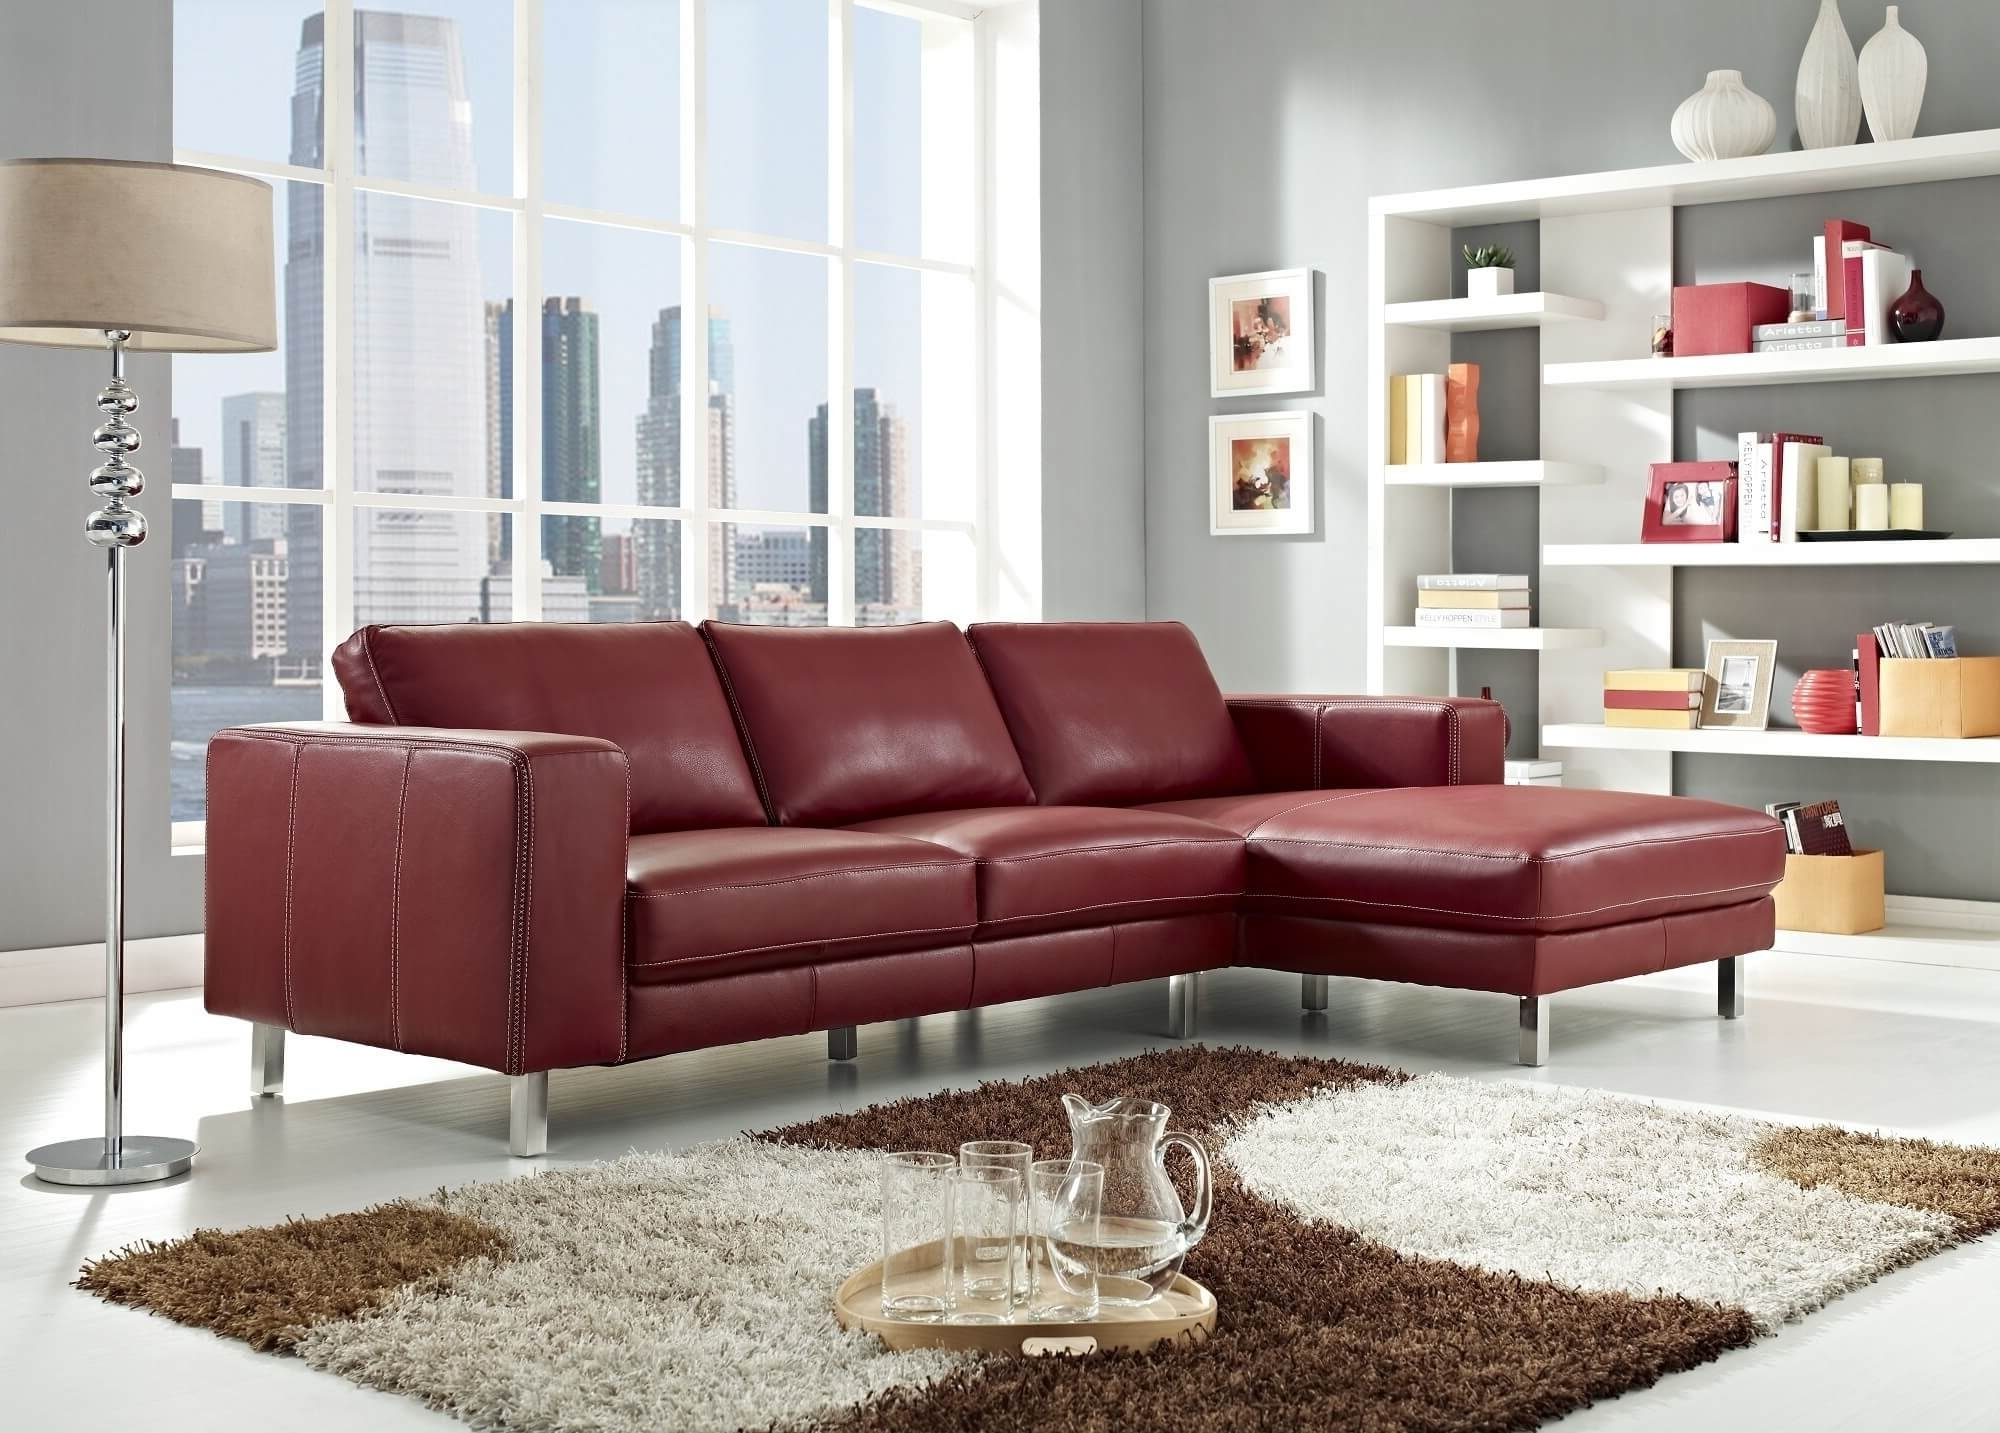 2019 Wide Seat Sectional Sofas Intended For Stylish Modern Red Sectional Sofas (View 16 of 20)